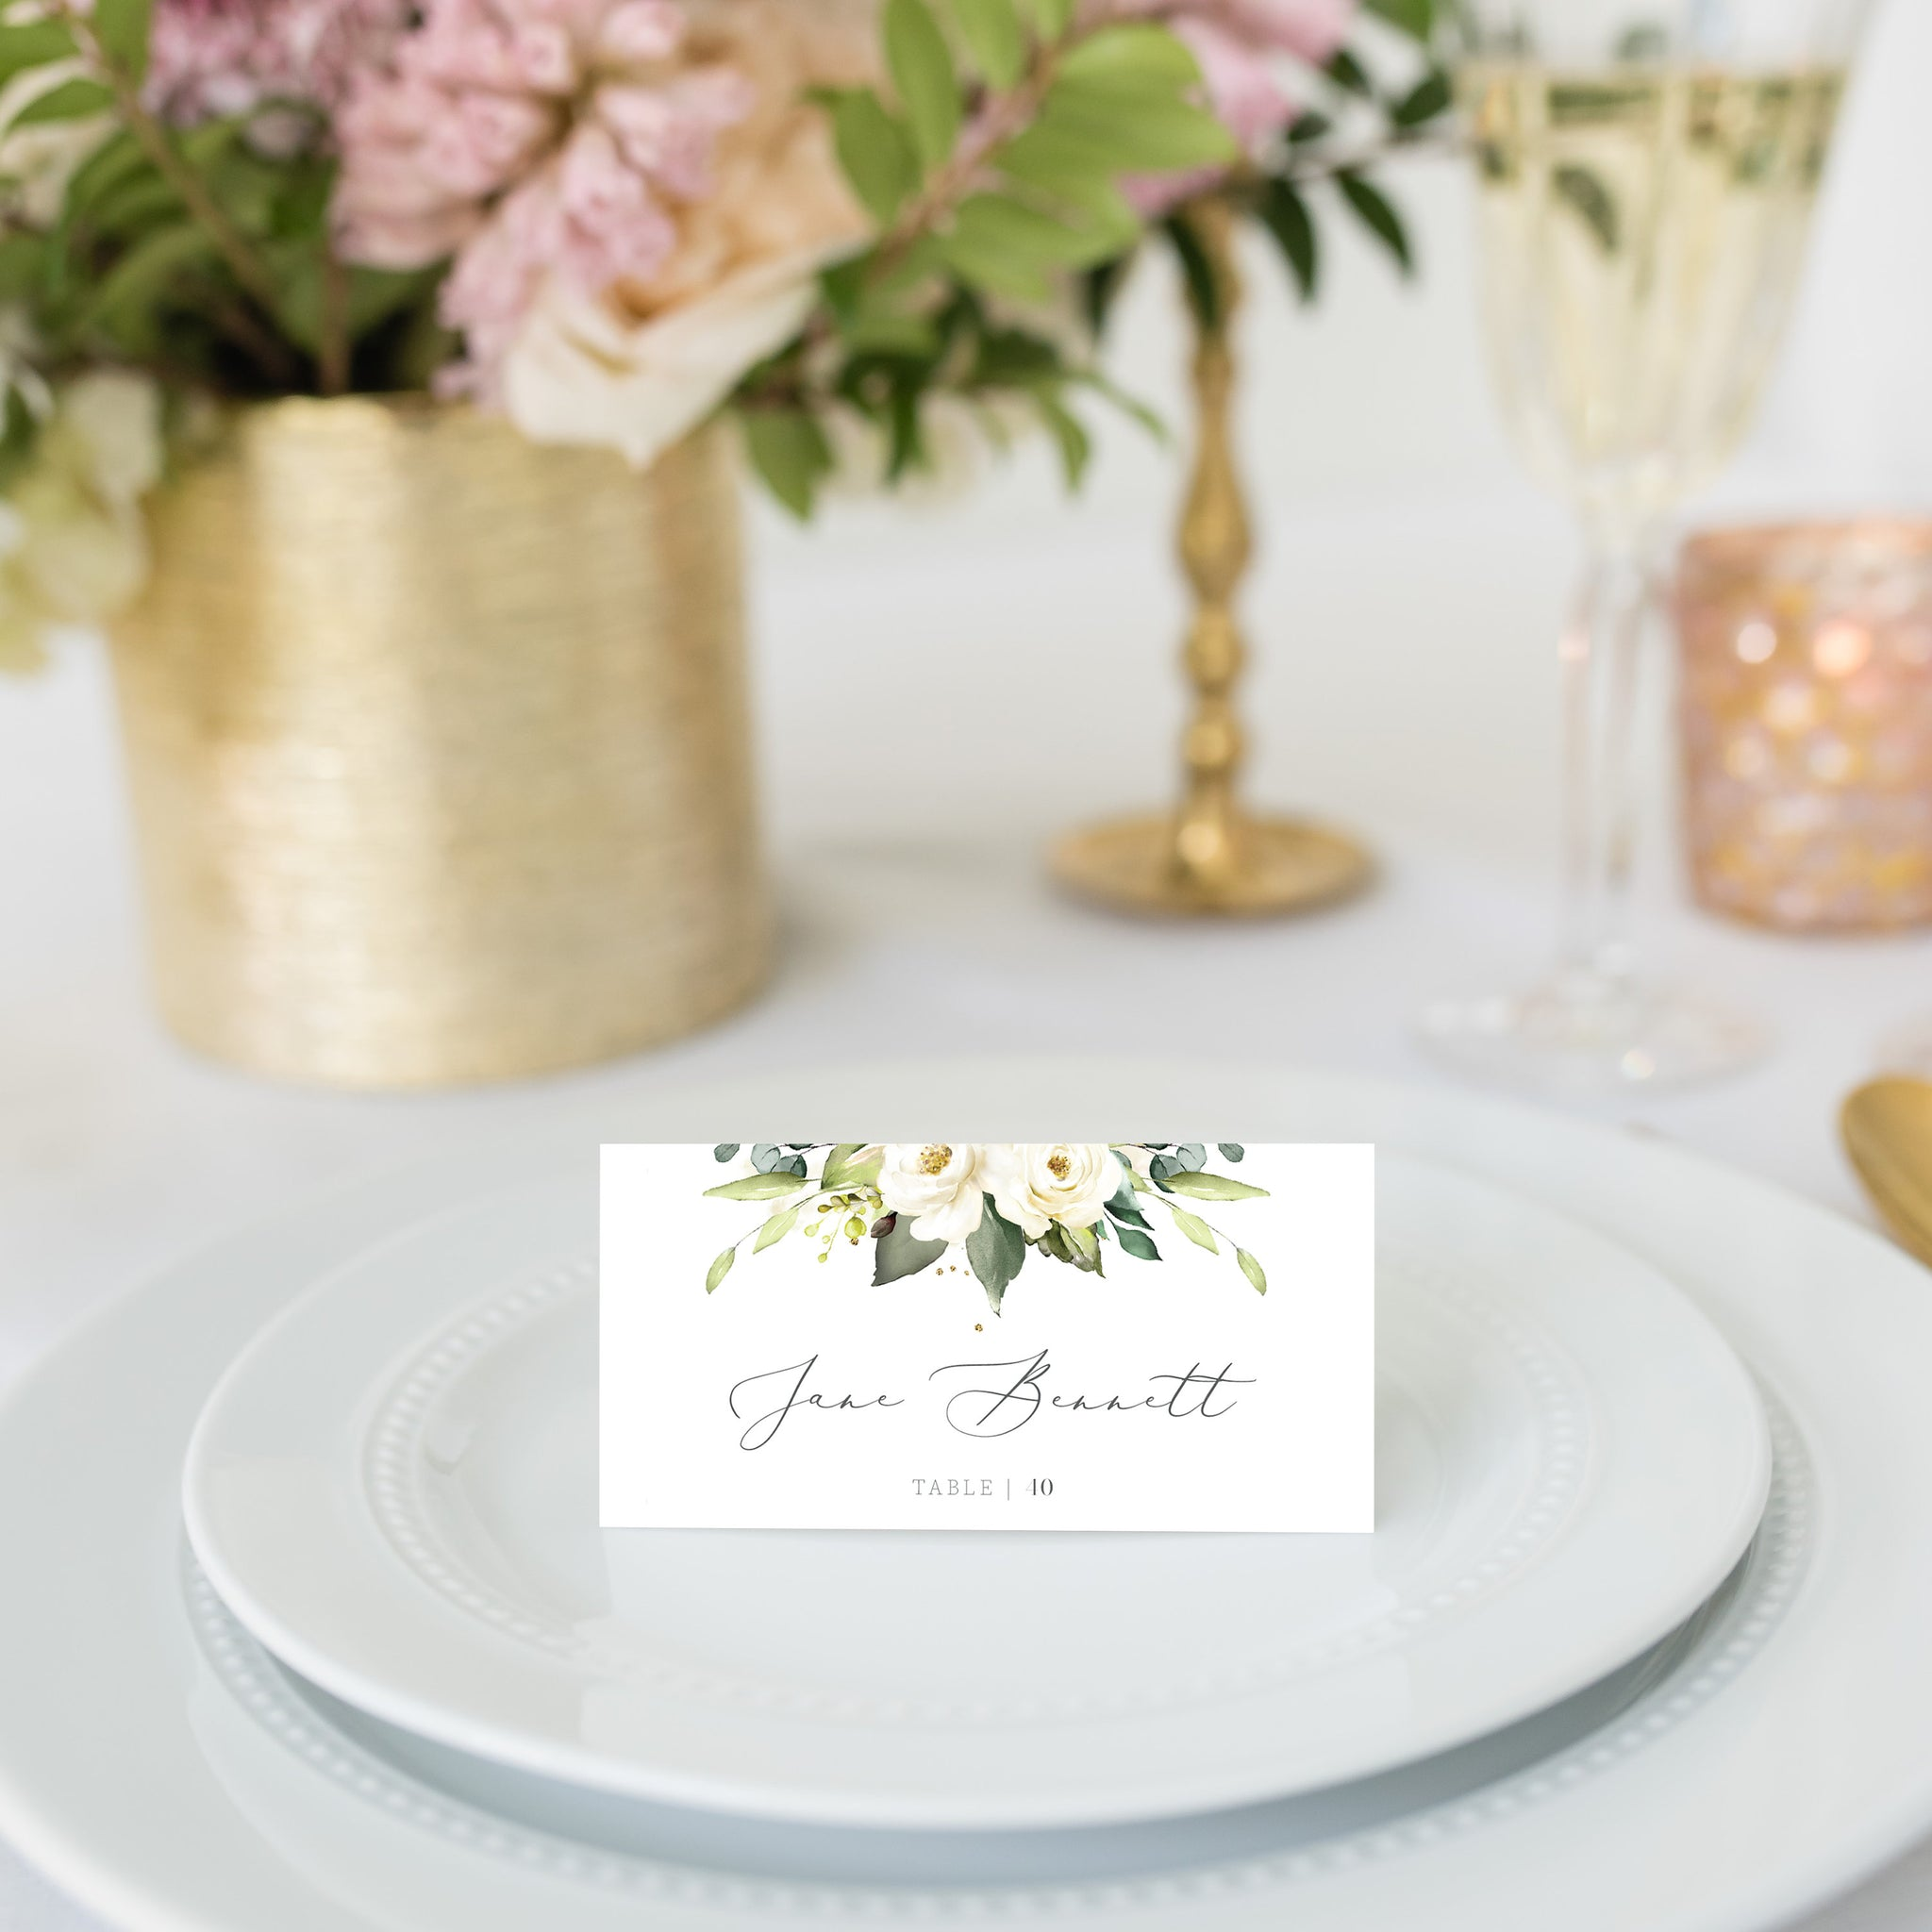 White Floral Greenery Wedding Place Card Template, Personalized Wedding Name Cards, Printable Place Cards, DIGITAL DOWNLOAD - WRG100 - @PlumPolkaDot